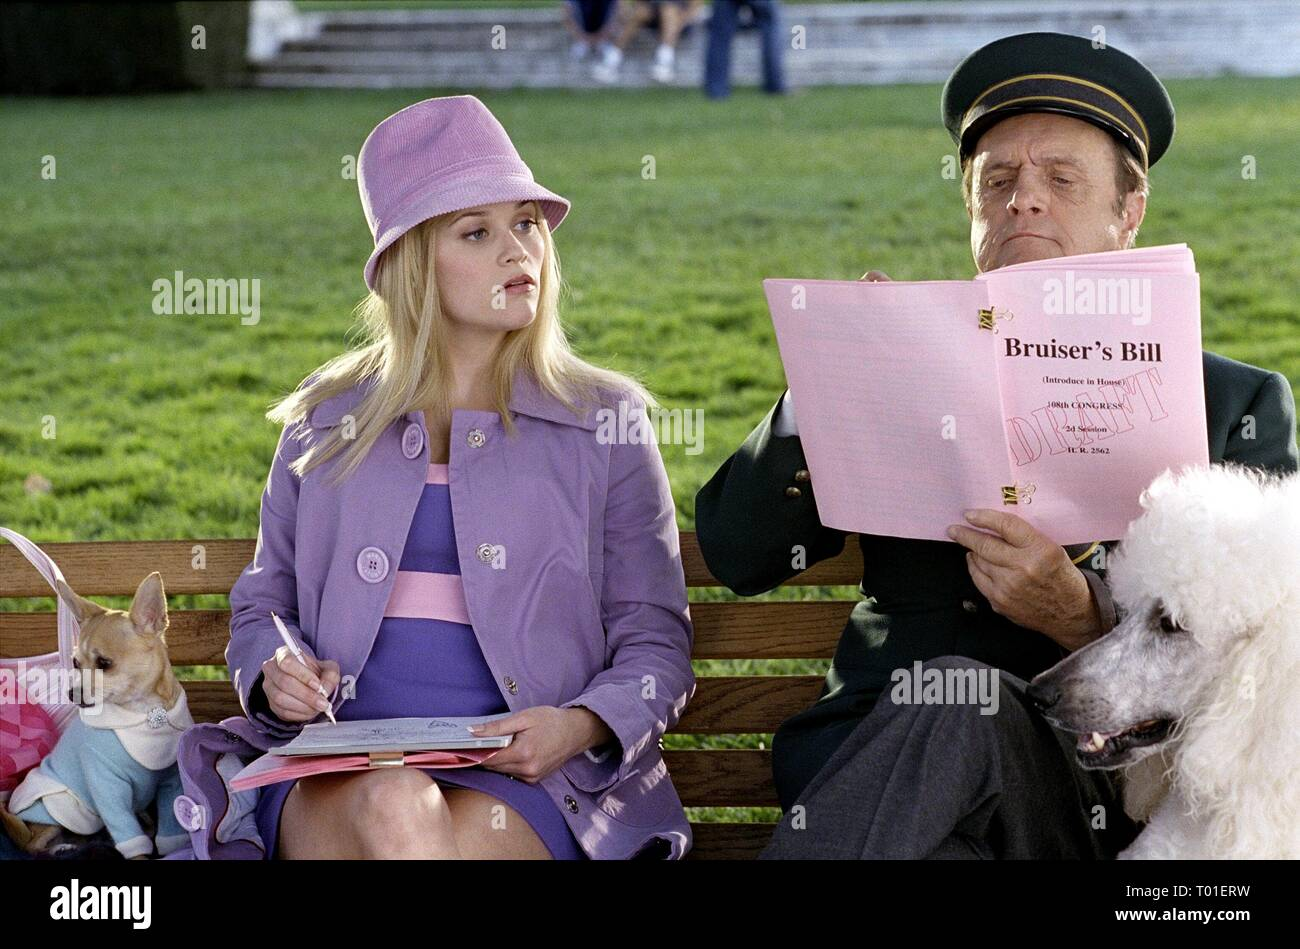 REESE WITHERSPOON, BOB NEWHART, LEGALLY BLONDE 2: RED  WHITE and BLONDE, 2003 - Stock Image